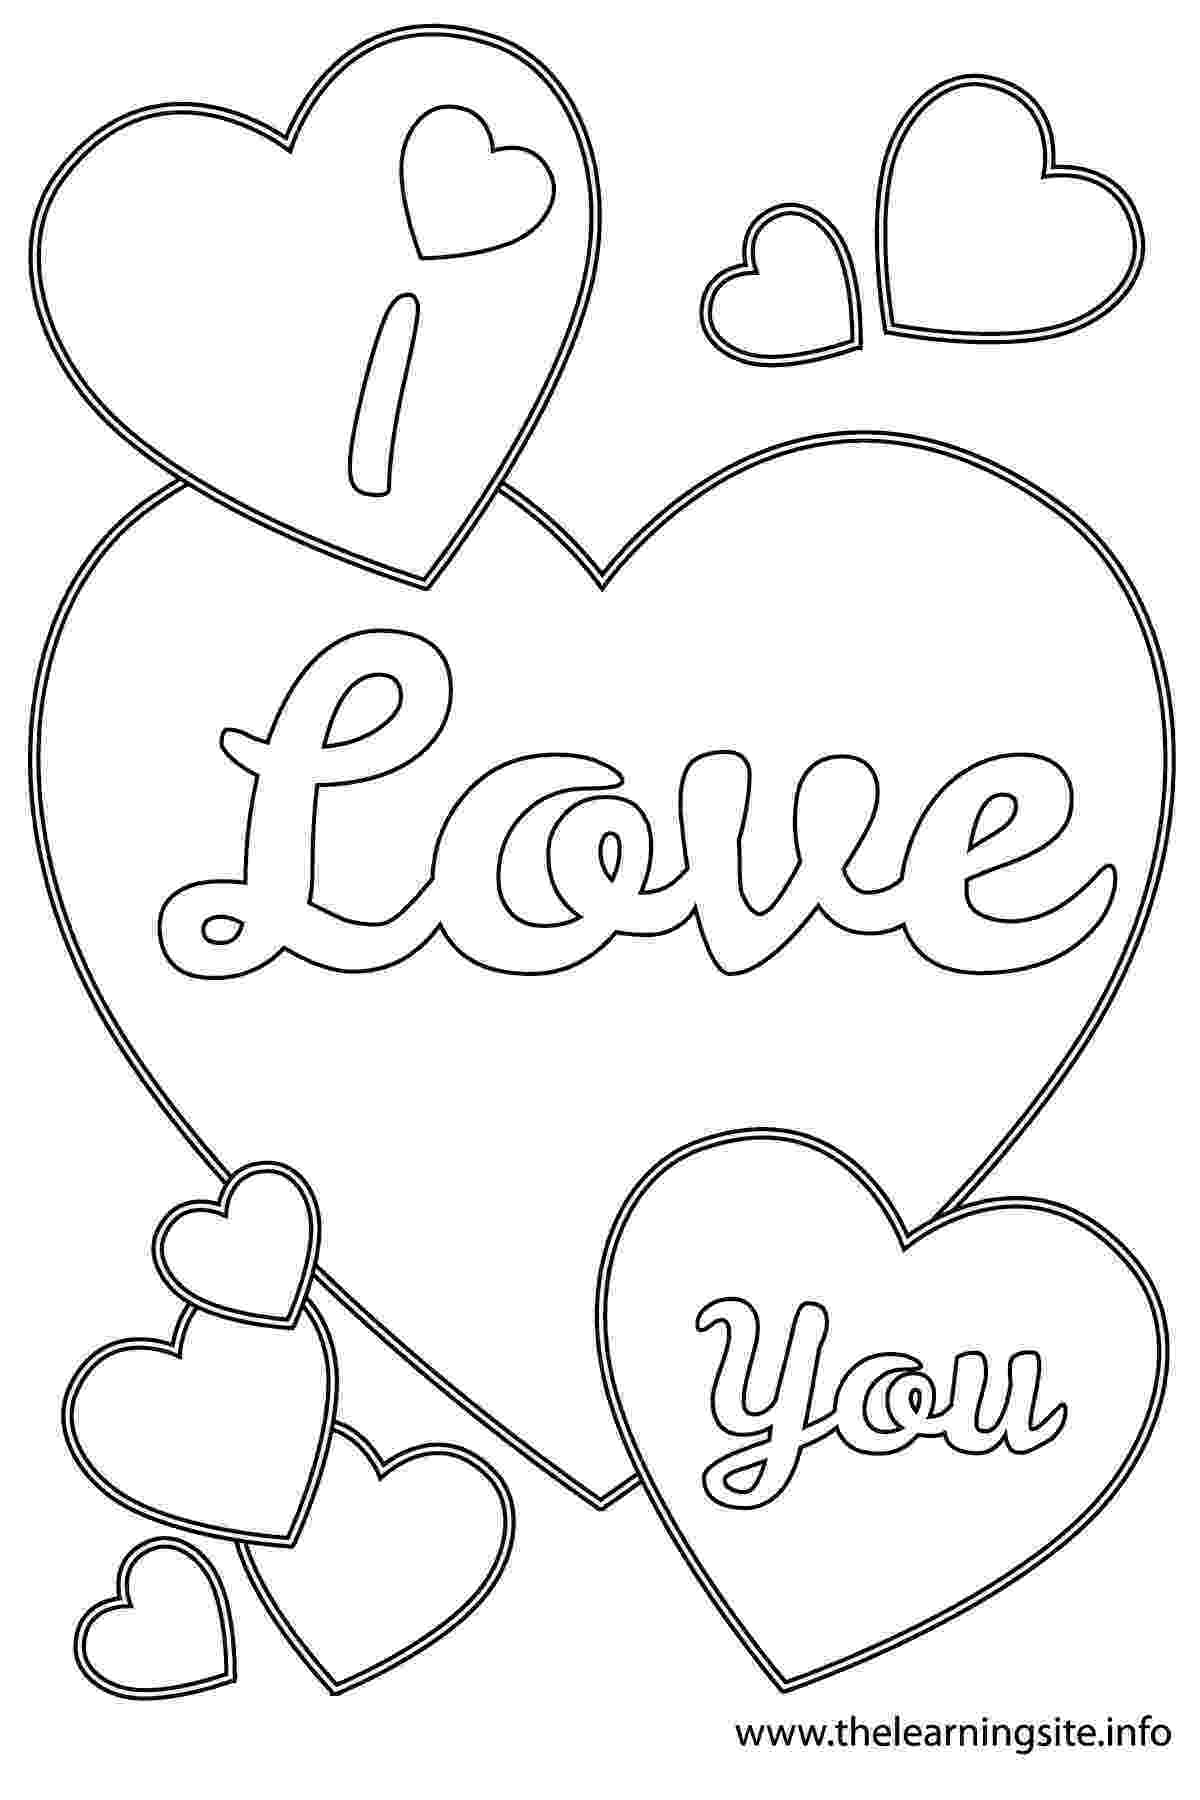 i love you coloring pages printable abatian quoti love you quot coloring pages pages you printable i coloring love